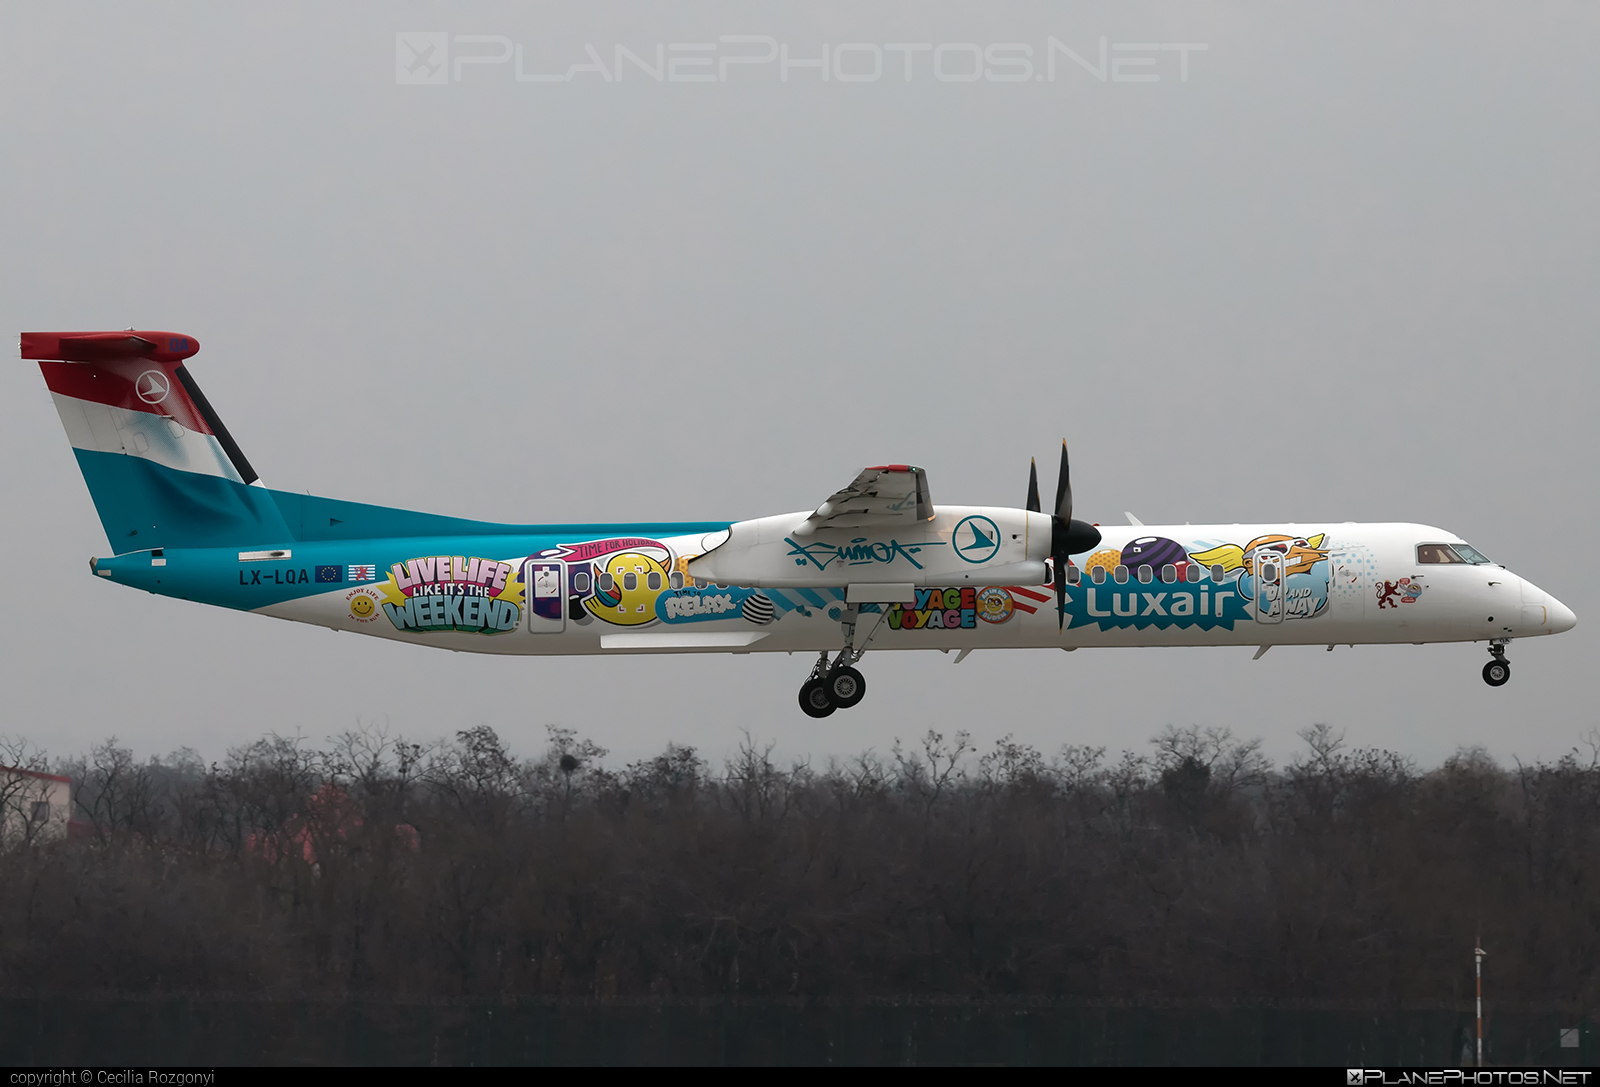 Bombardier DHC-8-Q402 Dash 8 - LX-LQA operated by Luxair #bombardier #dash8 #dhc8 #dhc8q402